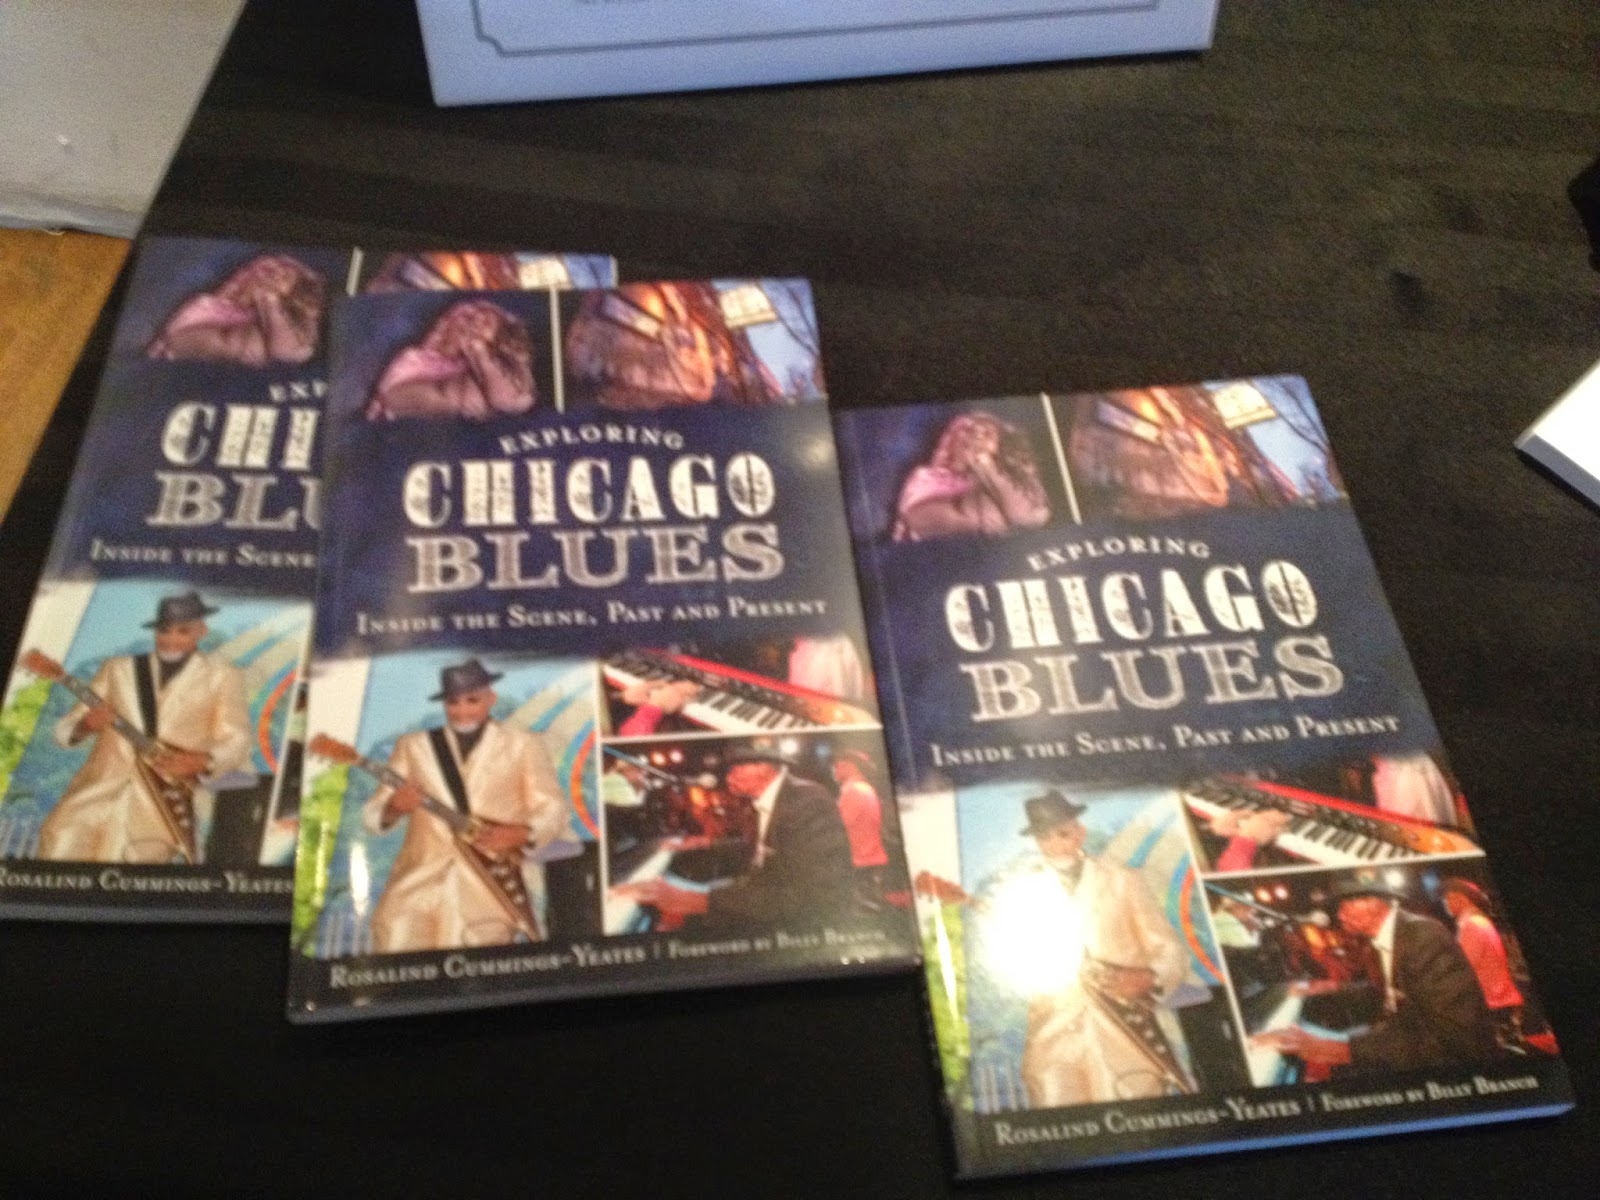 Exploring Chicago Blues by Rosalind Cummings-Yeates Book Signing Event